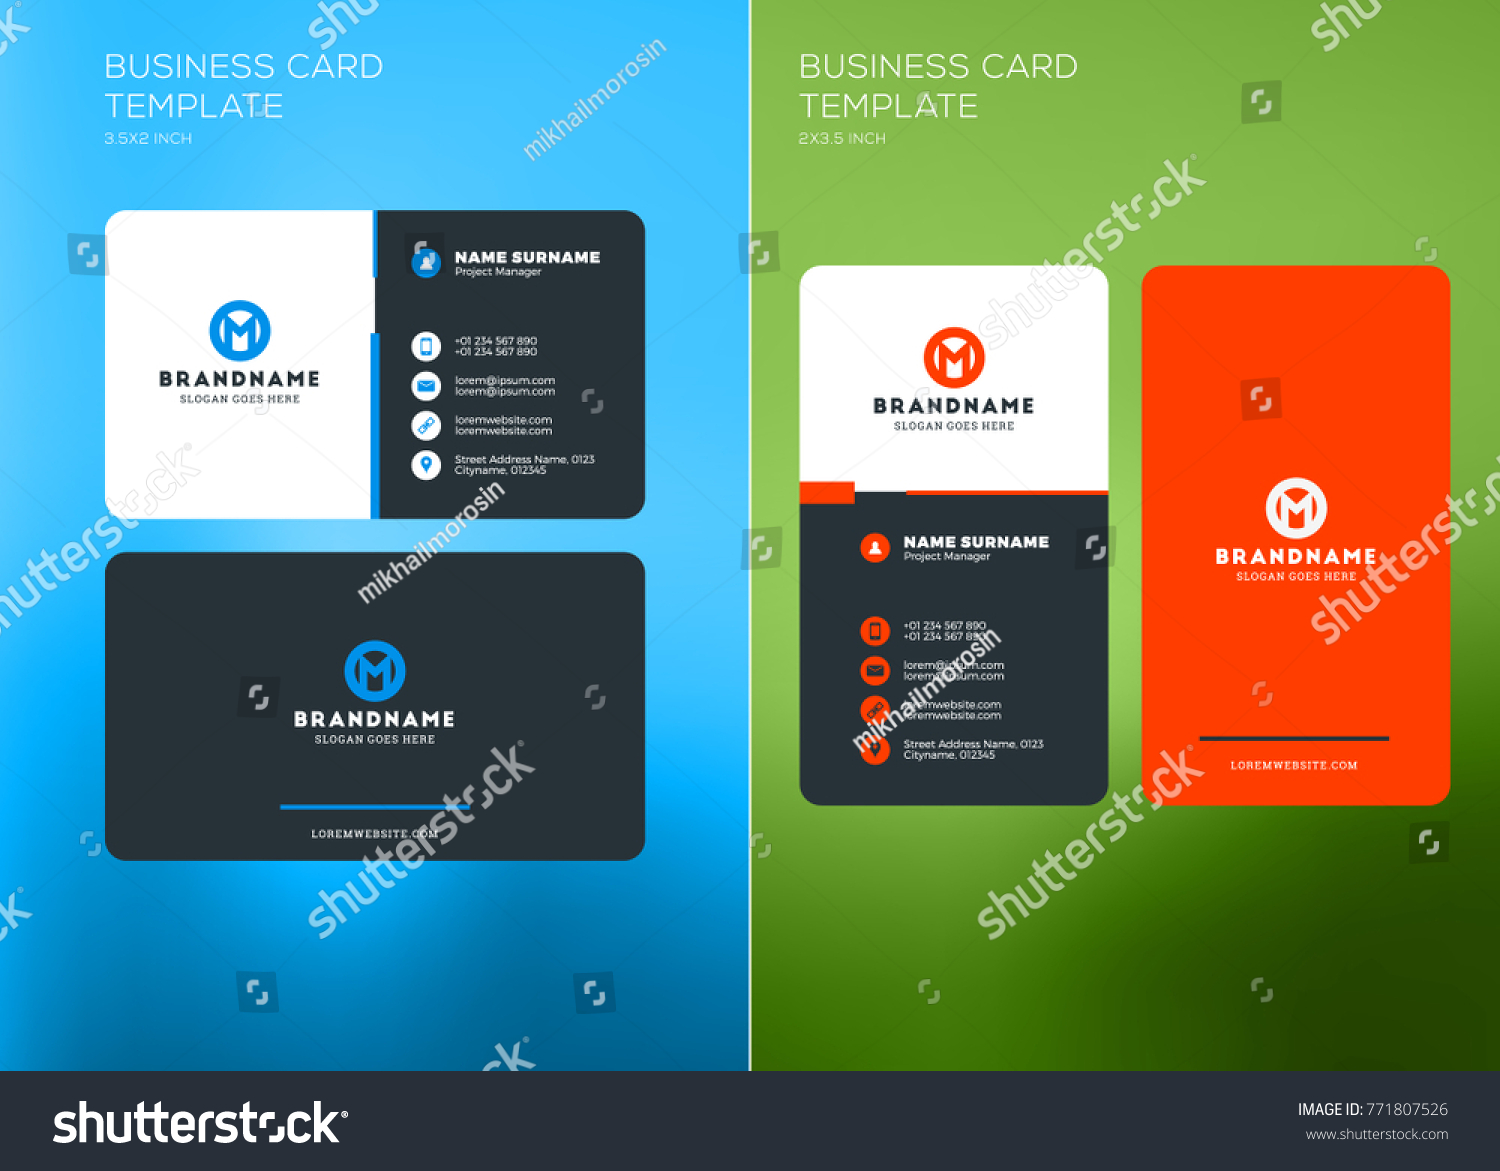 Corporate Business Card Print Template Vertical Stock Photo (Photo ...